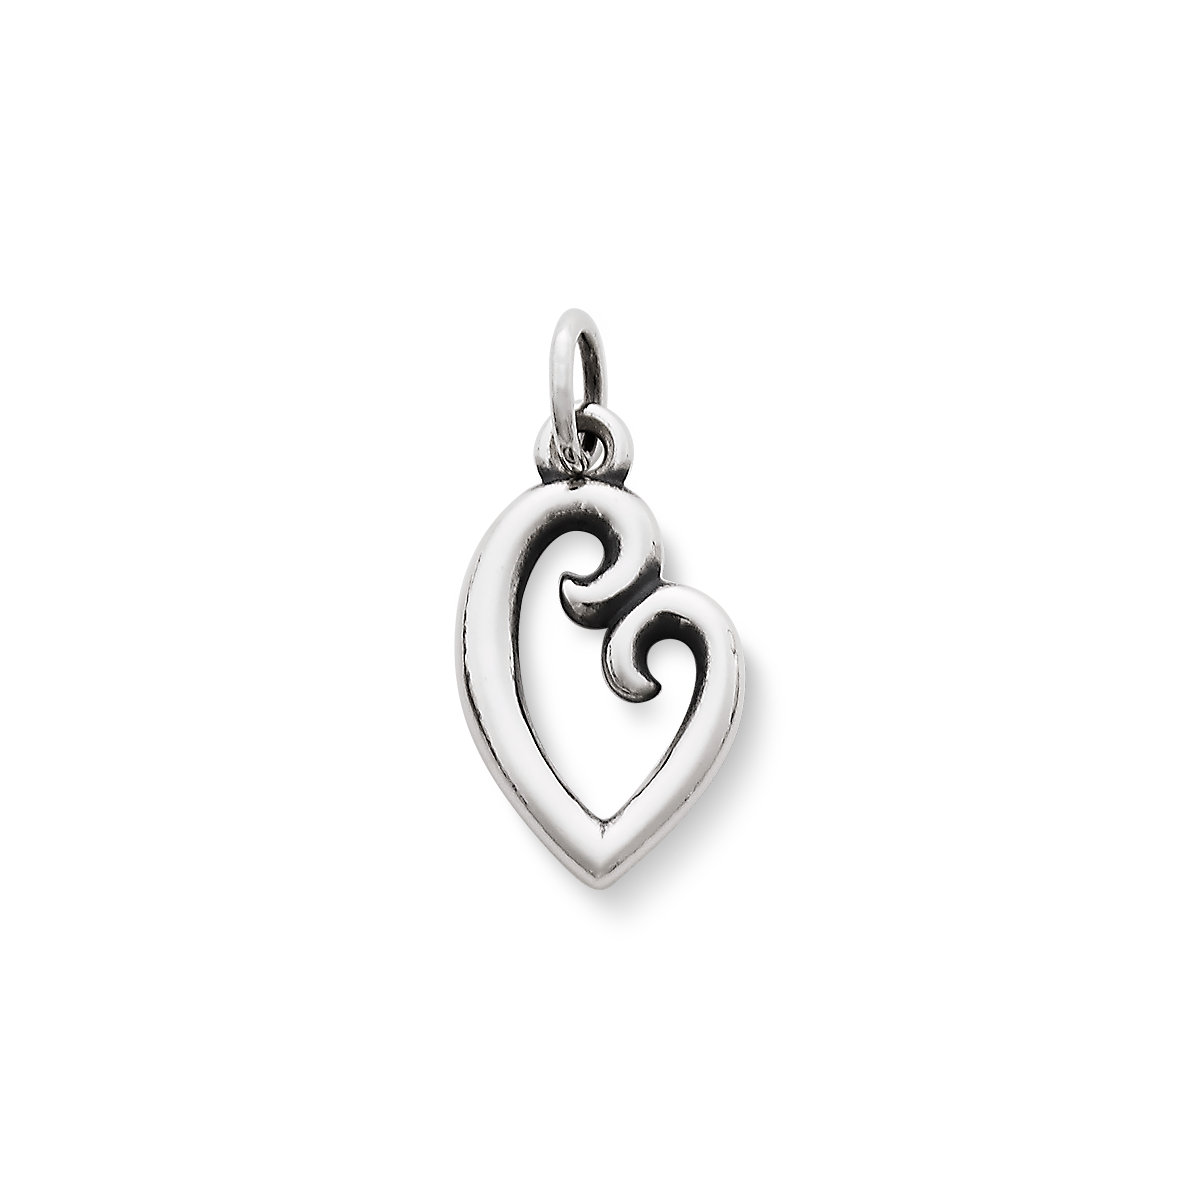 Charms for bracelets and necklaces james avery mothers love charm small biocorpaavc